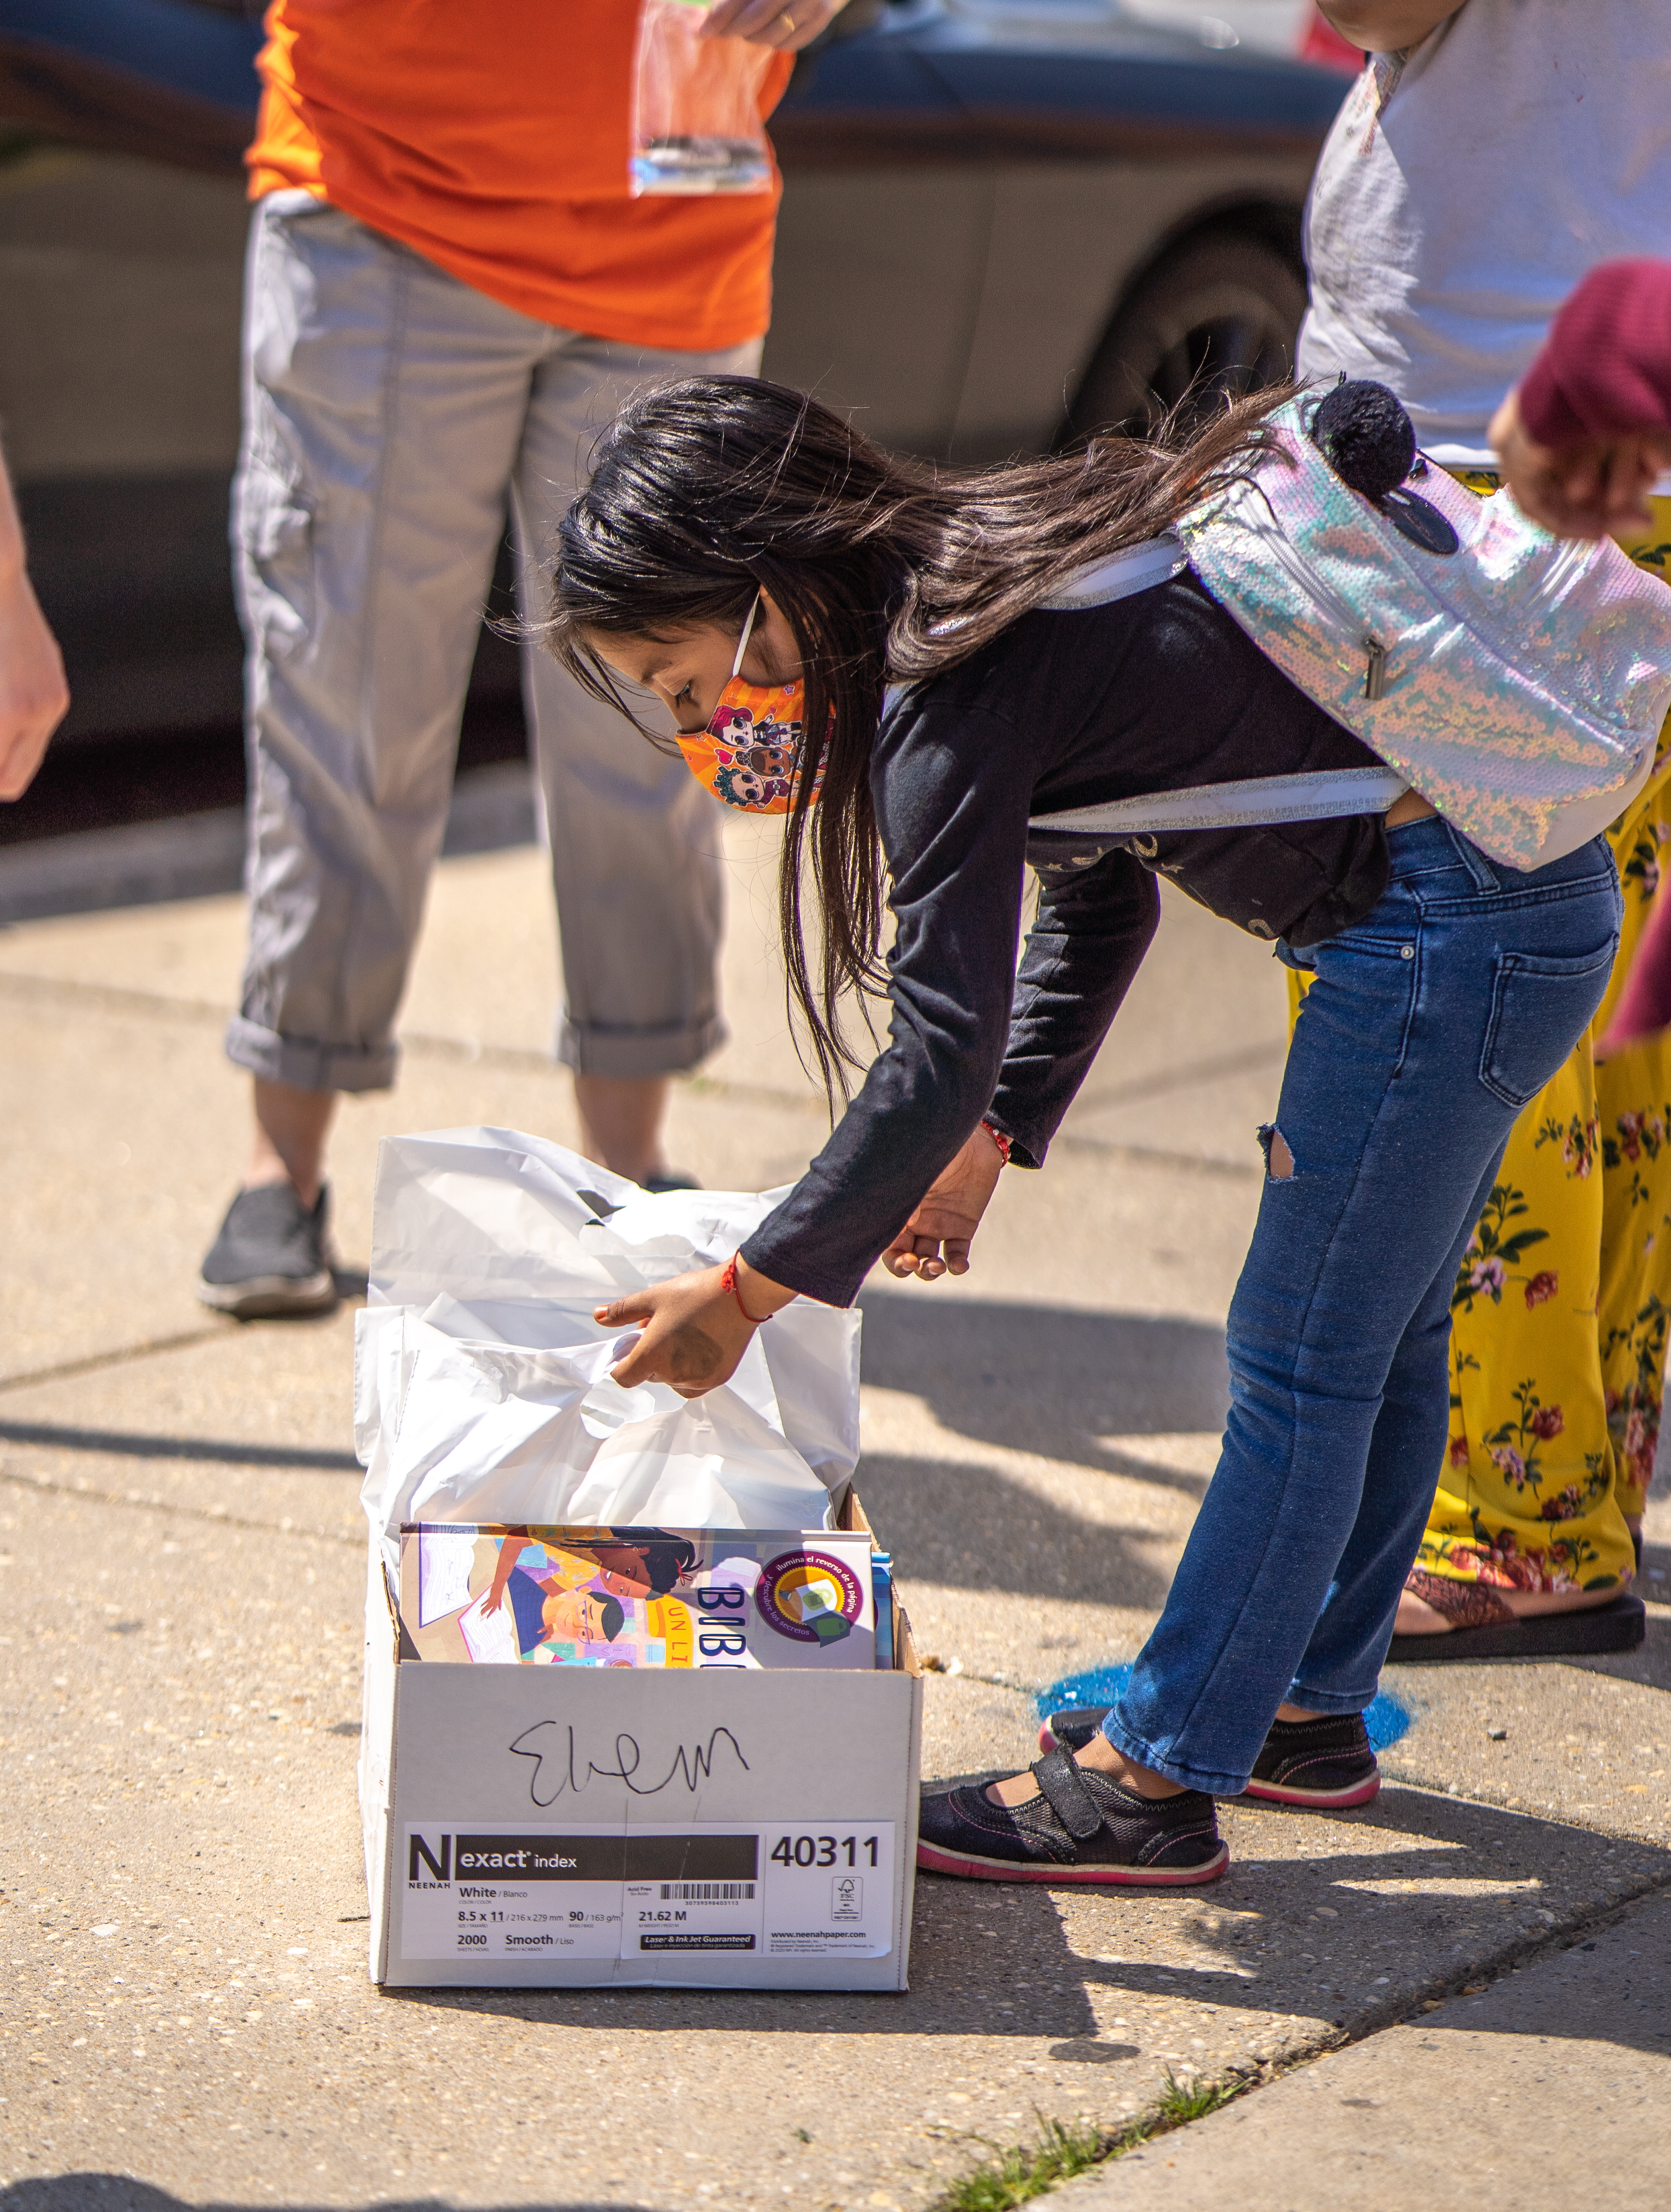 UWCM Mobile Book distribution photo - young girl sifting through a box of bagged books